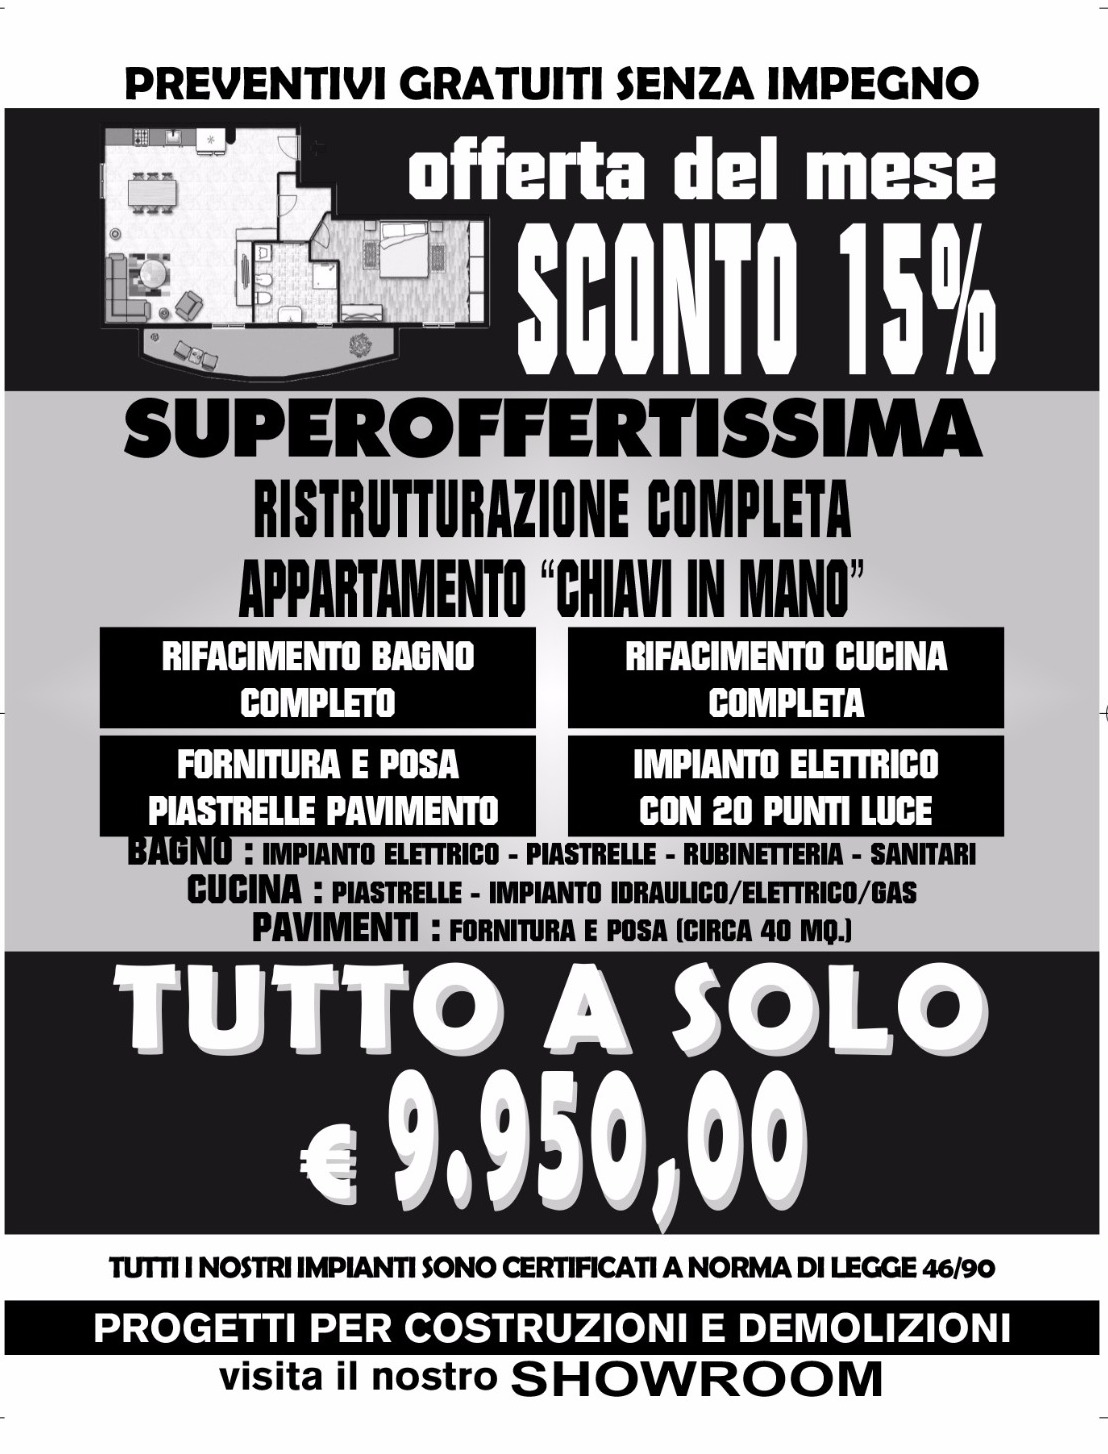 superoffertissima15